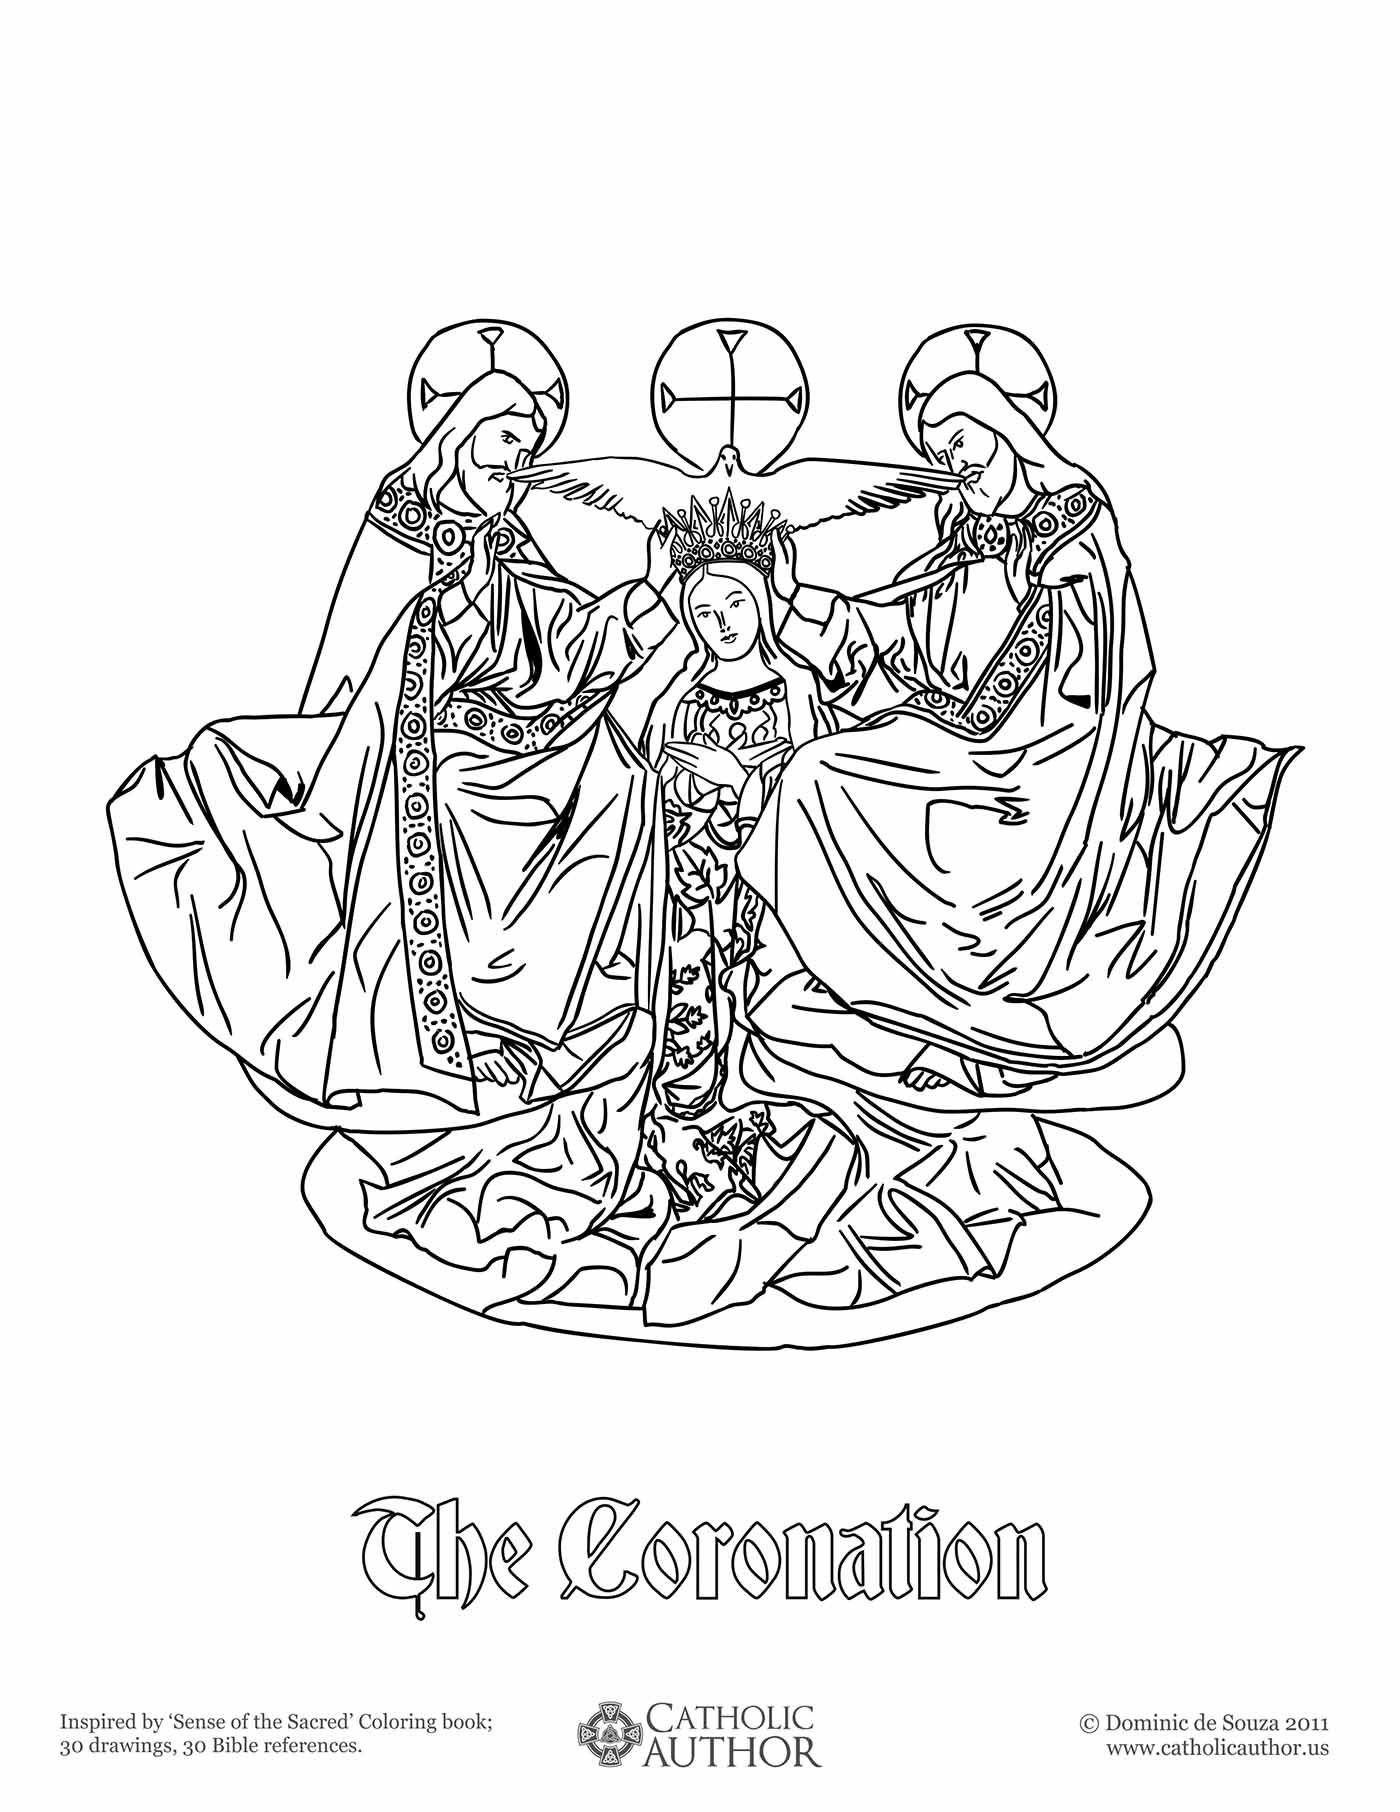 The Coronation - Free Hand-Drawn Catholic Coloring Picture | vérité ...